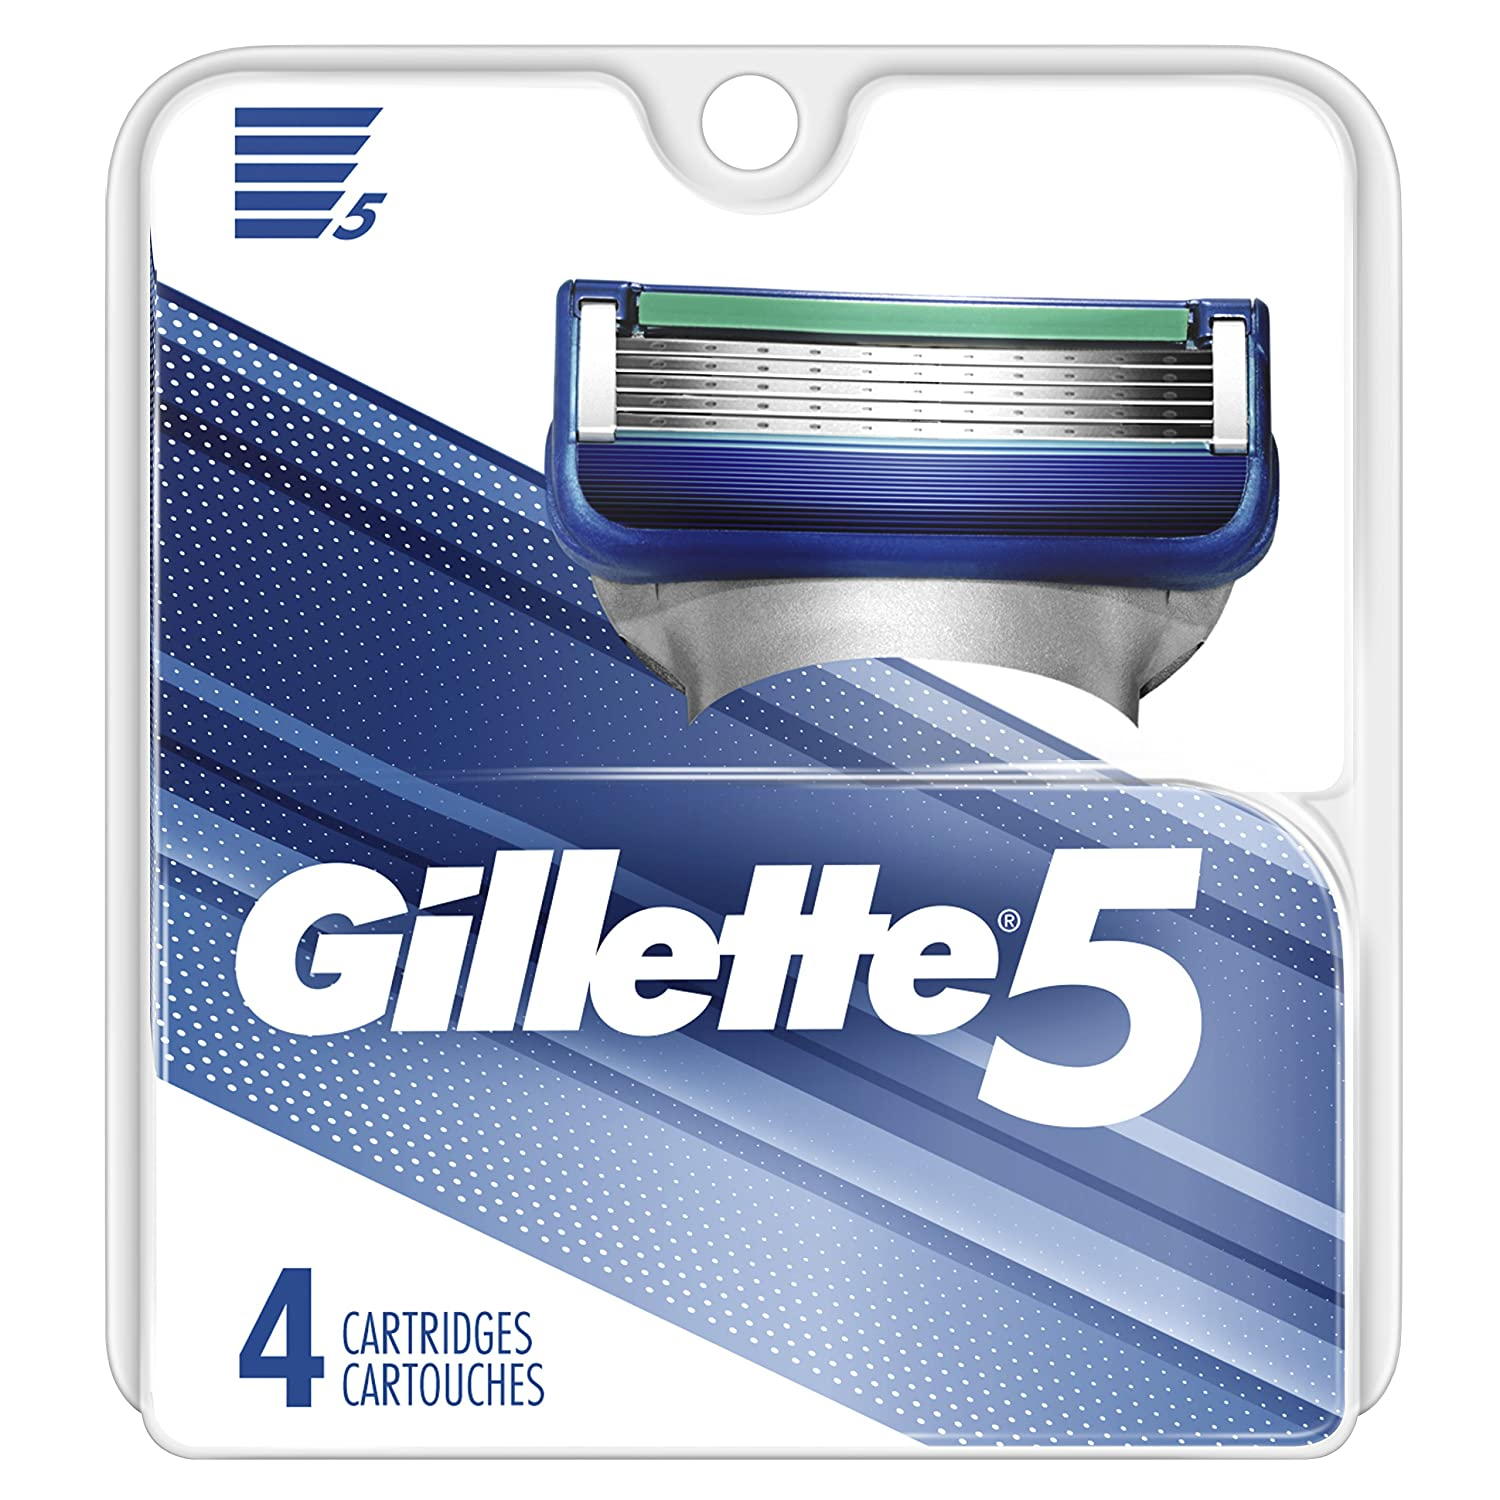 Gillette 5 Men's Razor Blade Refill Catridges, 4 Count Procter and Gamble